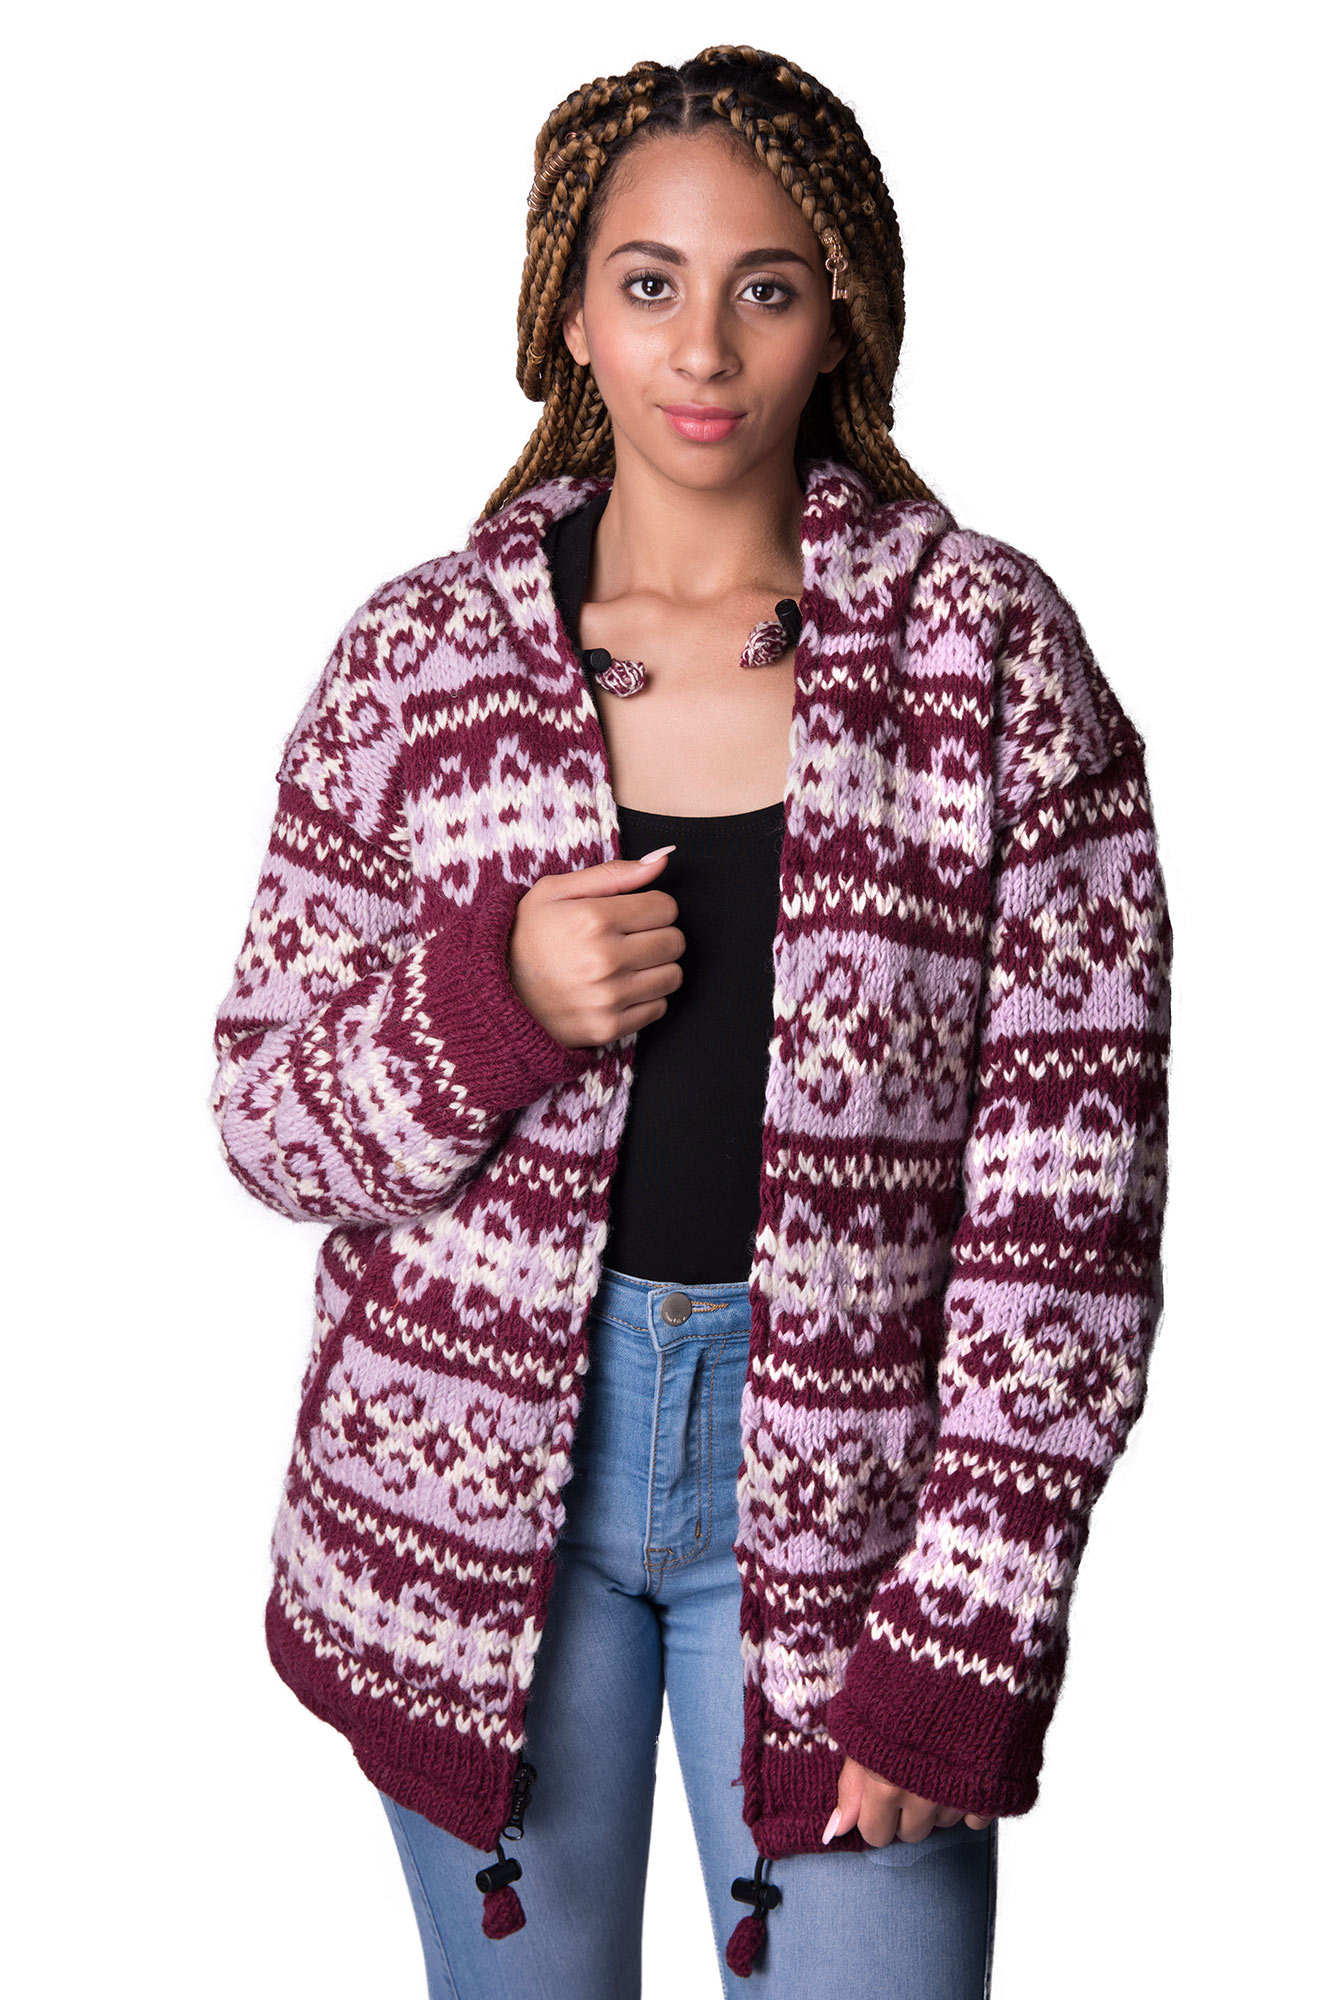 Wool Vintage Himalayan Mountain Jacket – Long Length Plum & Berry